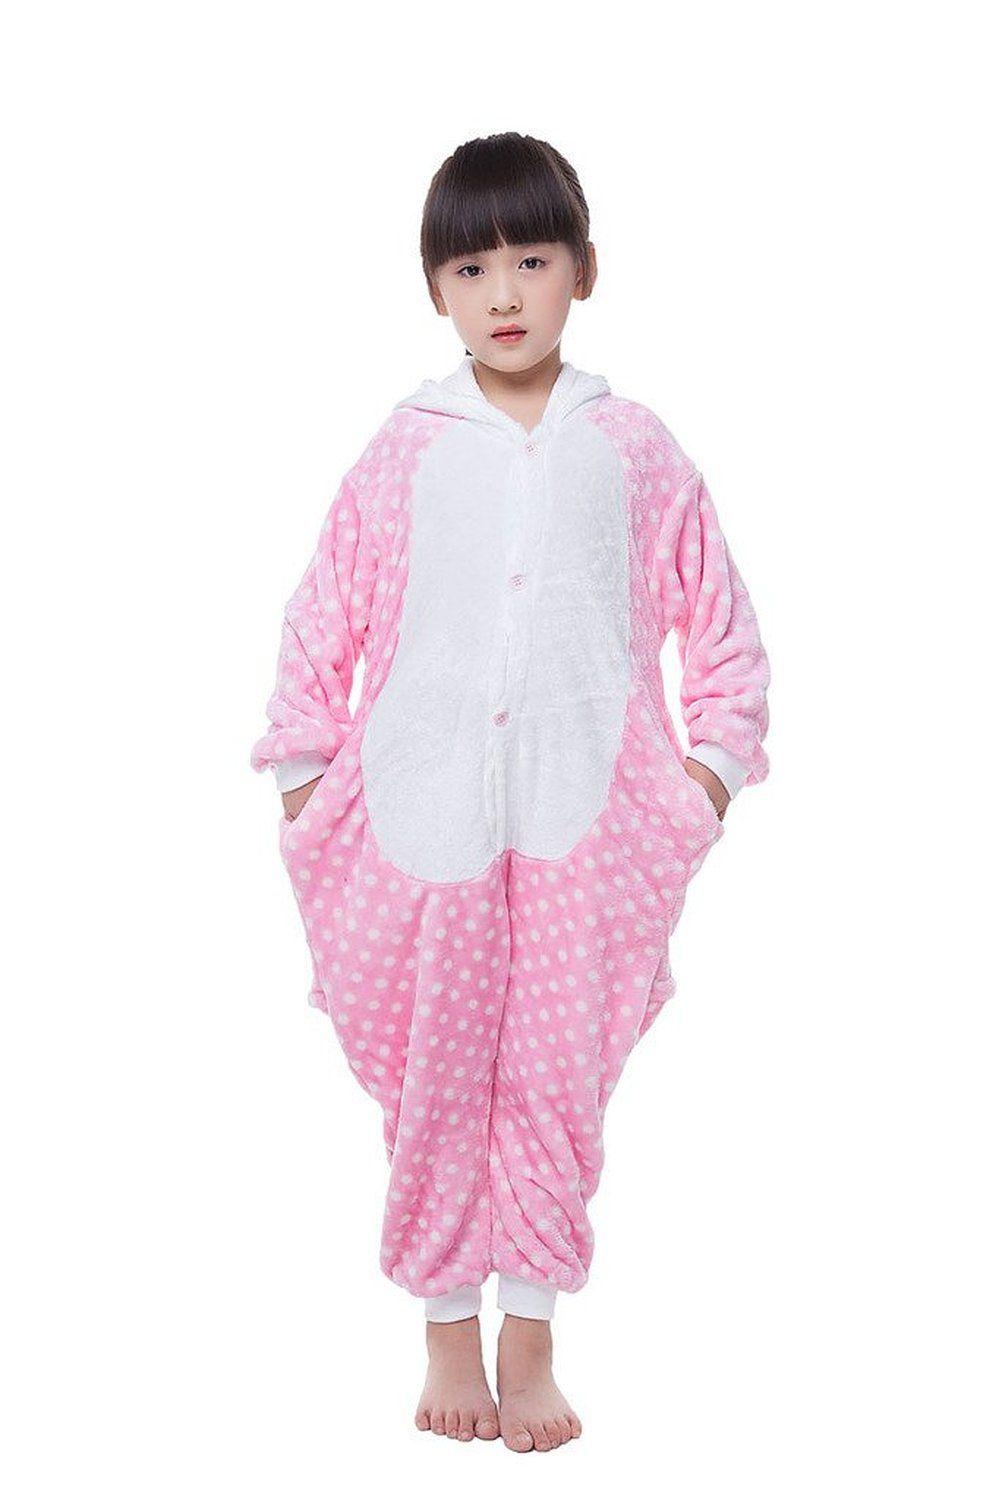 Robot Check Pink Hello Kitty Onesie Pajamas Kids Costumes